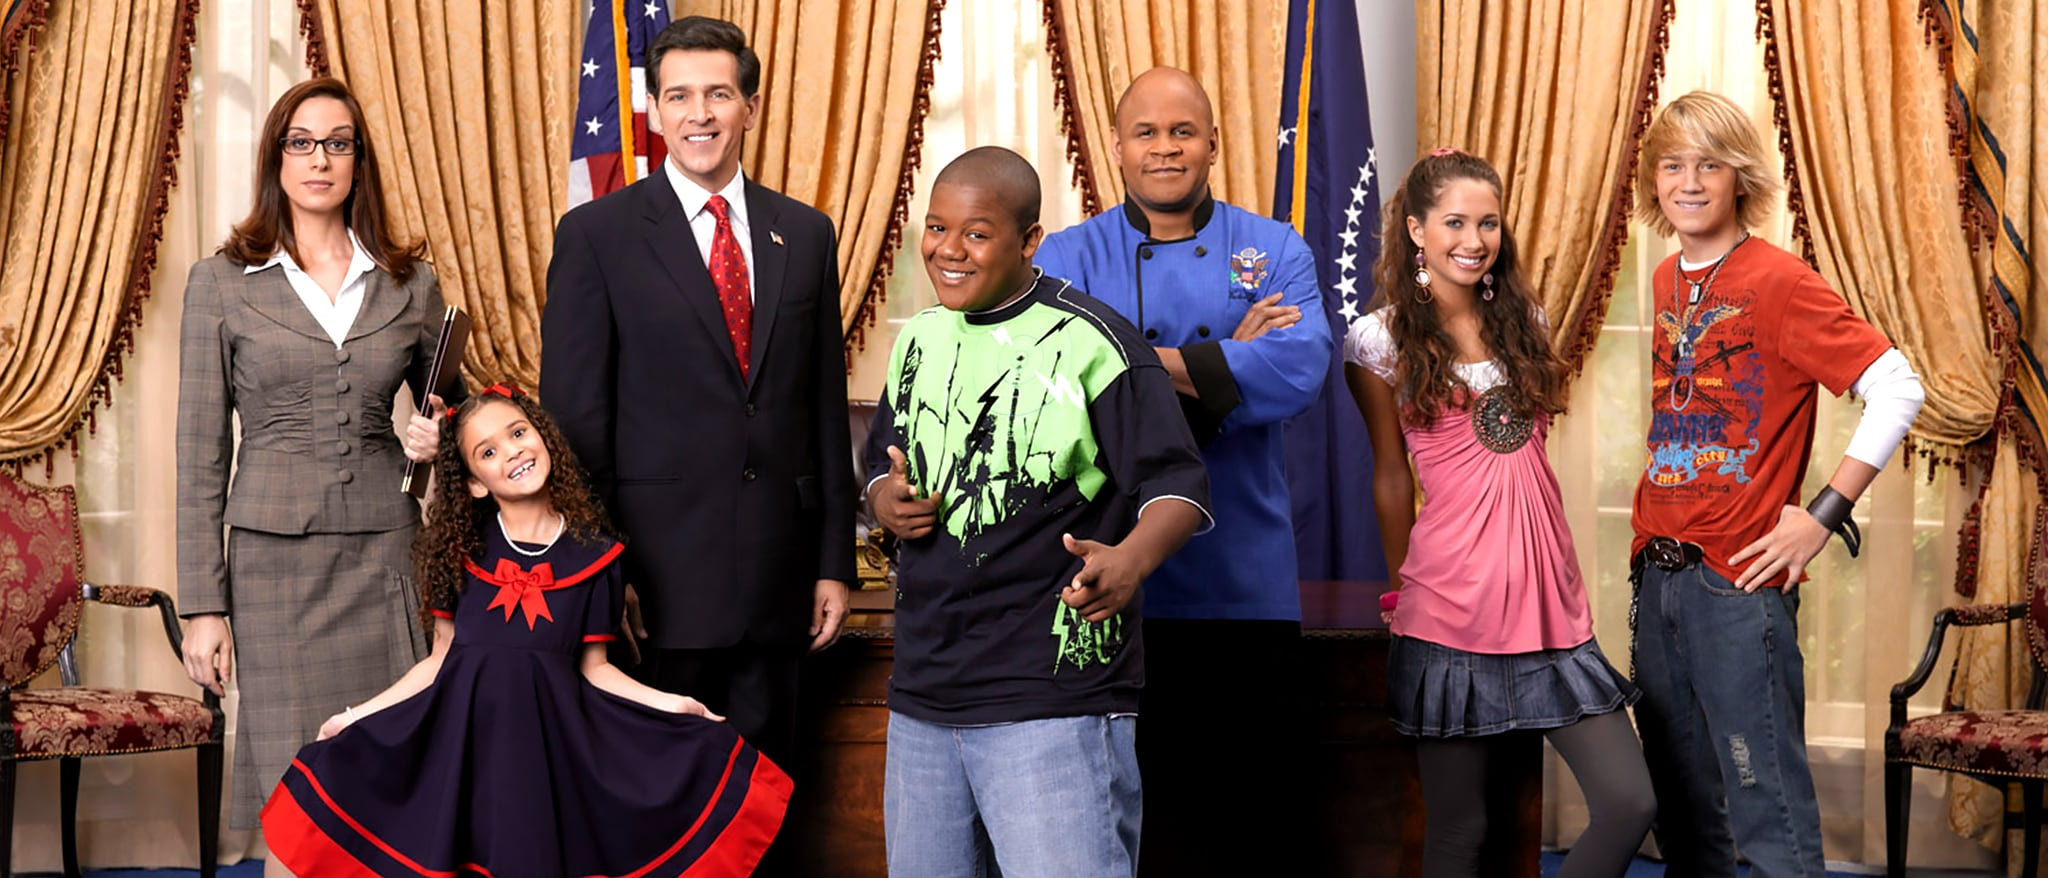 Cory in the House hero